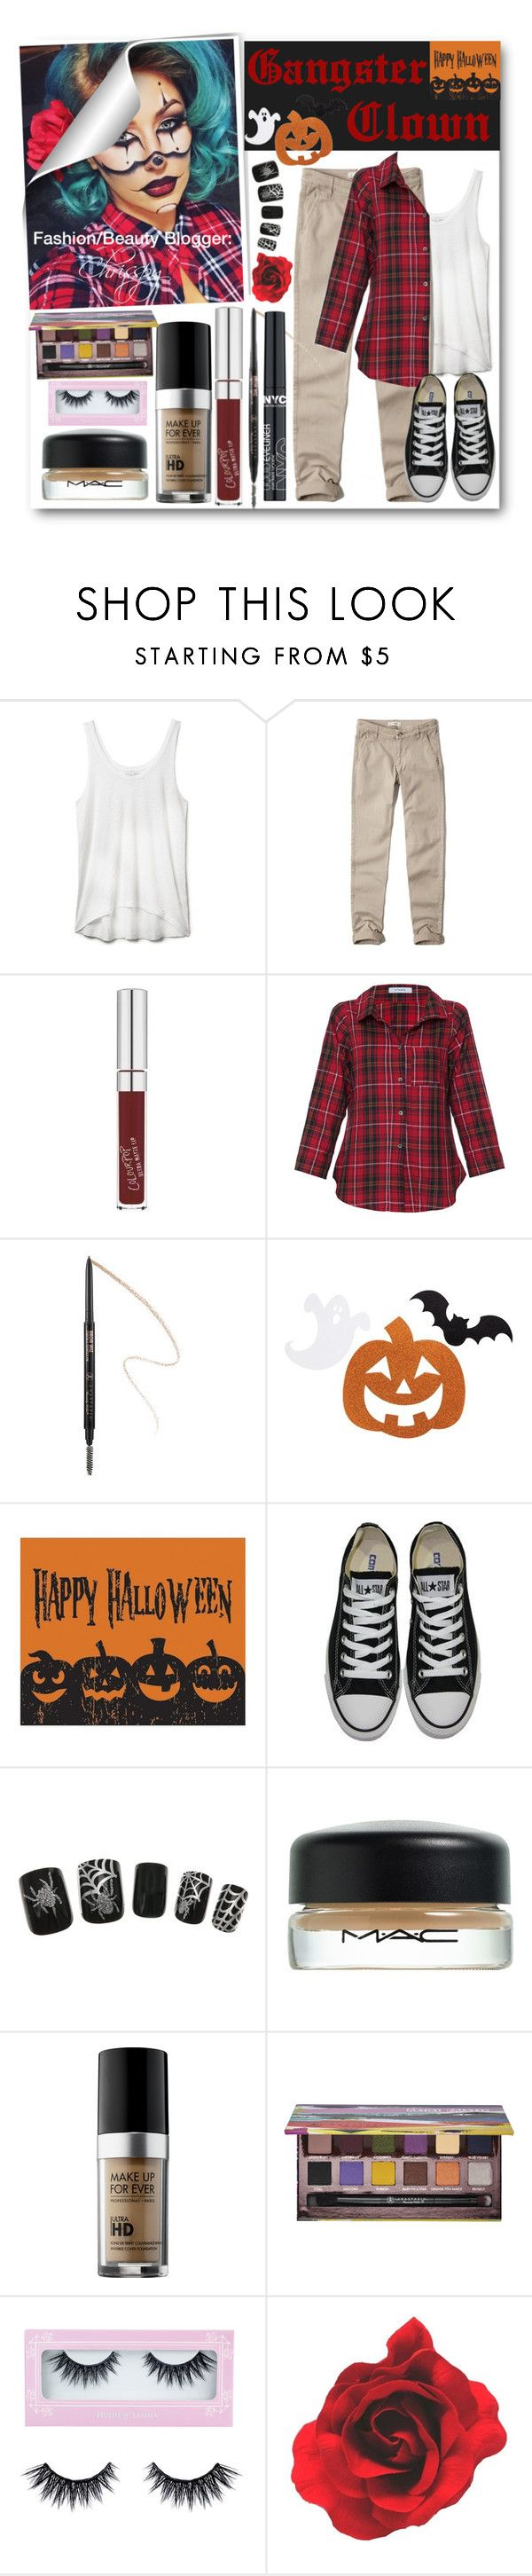 """""""Halloween Tricks: Chrisspy's Gangster Clown"""" by eclectic-chic ❤ liked on Polyvore featuring мода, Rebecca Minkoff, Abercrombie & Fitch, Vitamin, Anastasia, Sixtrees, Converse, MAC Cosmetics, MAKE UP FOR EVER и Anastasia Beverly Hills"""